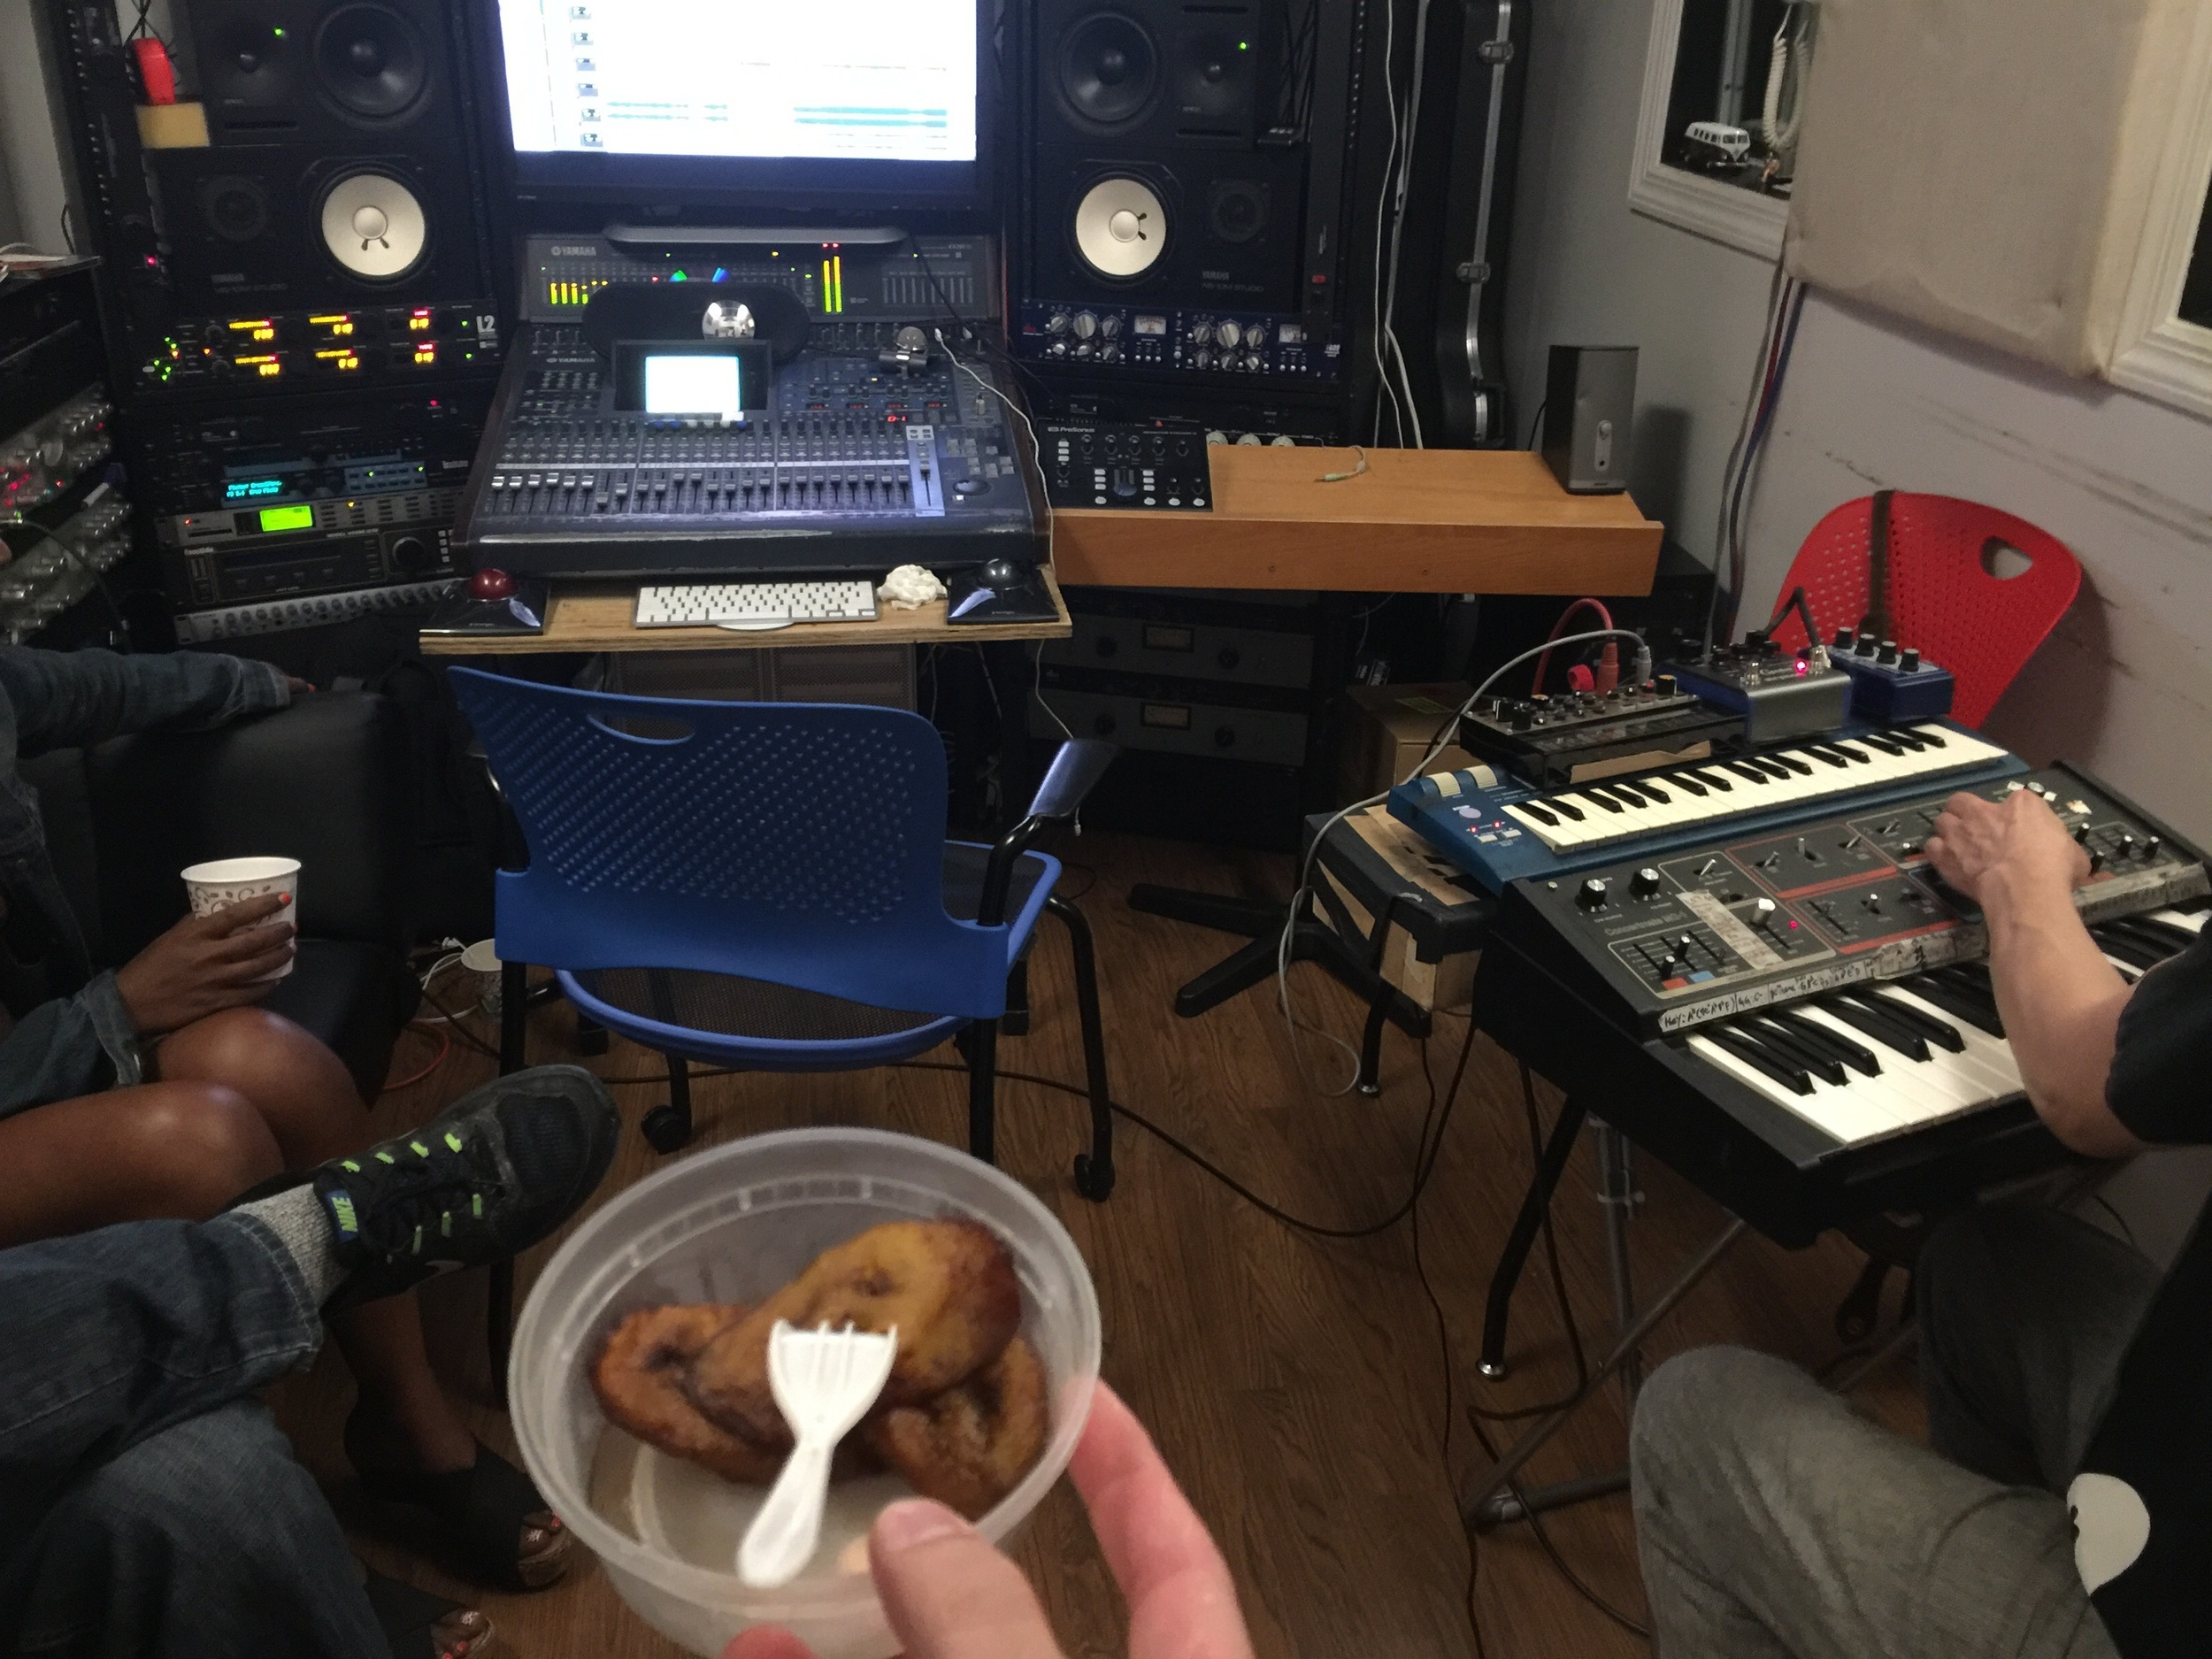 6/27/16 Platanos, Synthesizers, and mix.